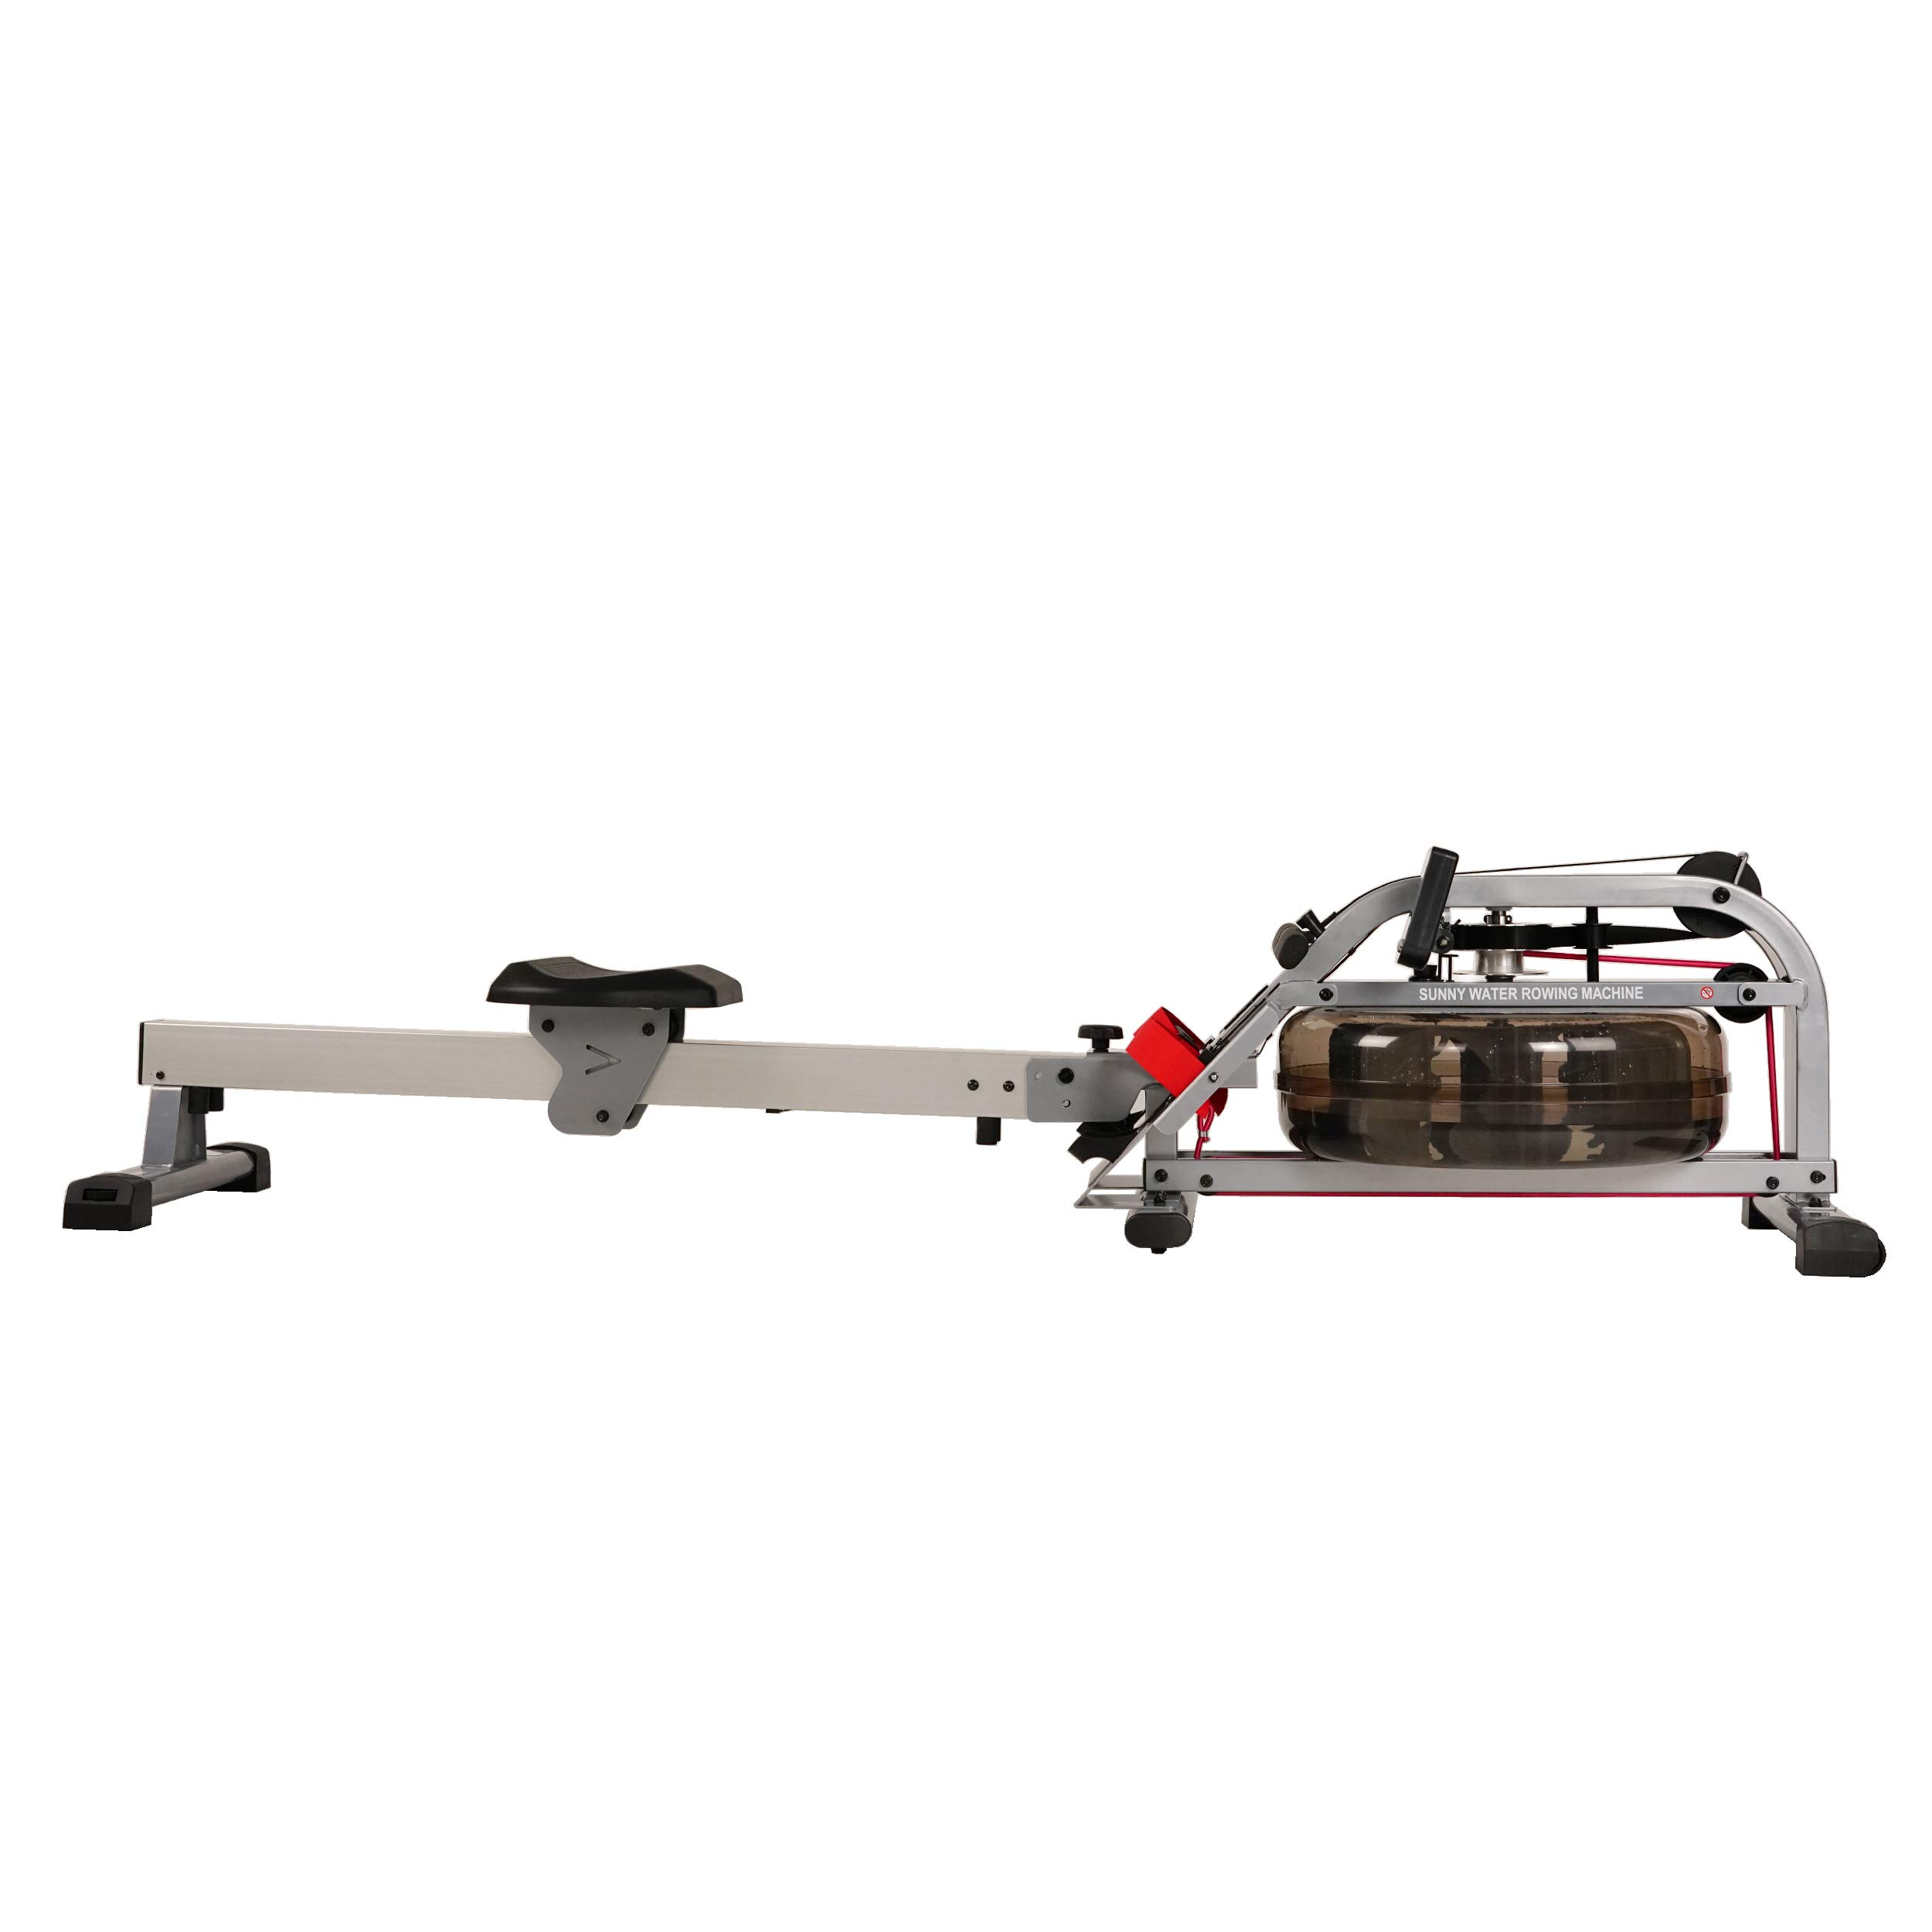 Sunny Health & Fitness Water Rowing Machine Rower w/LCD Monitor - SF-RW5866 by Sunny Health & Fitness (Image #12)